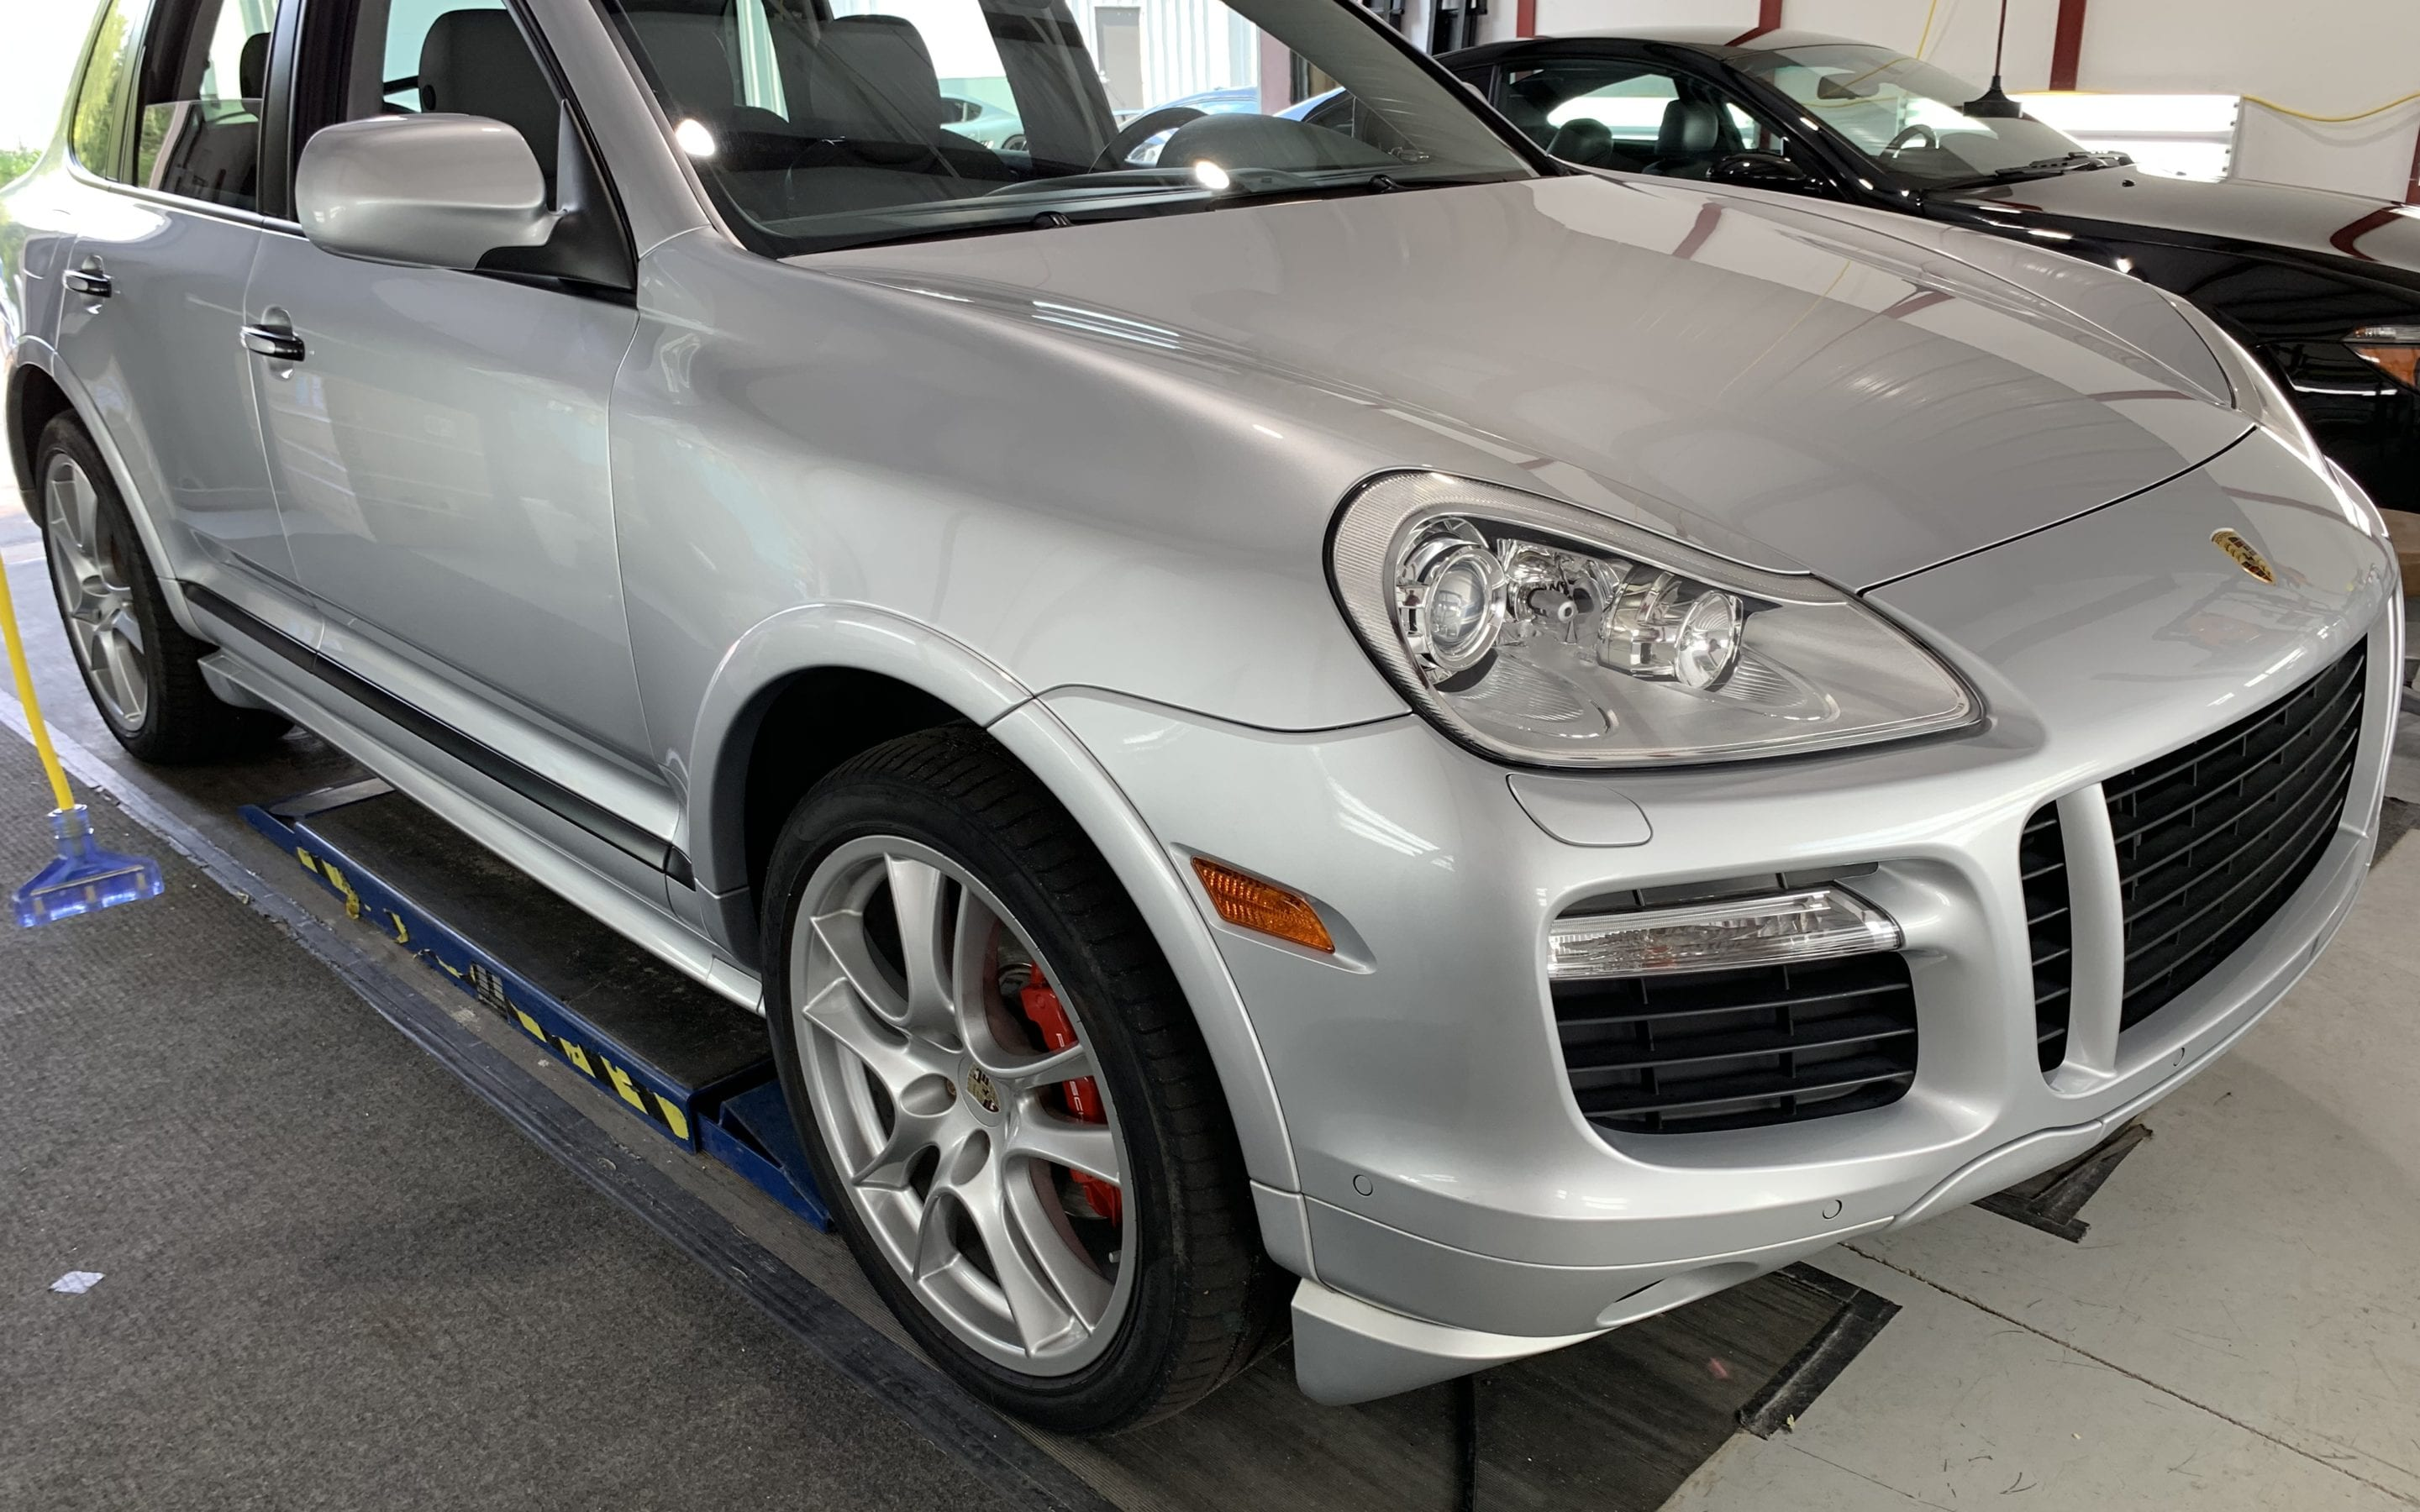 Ceramic Coating of a 2015 Porsche Cayenne